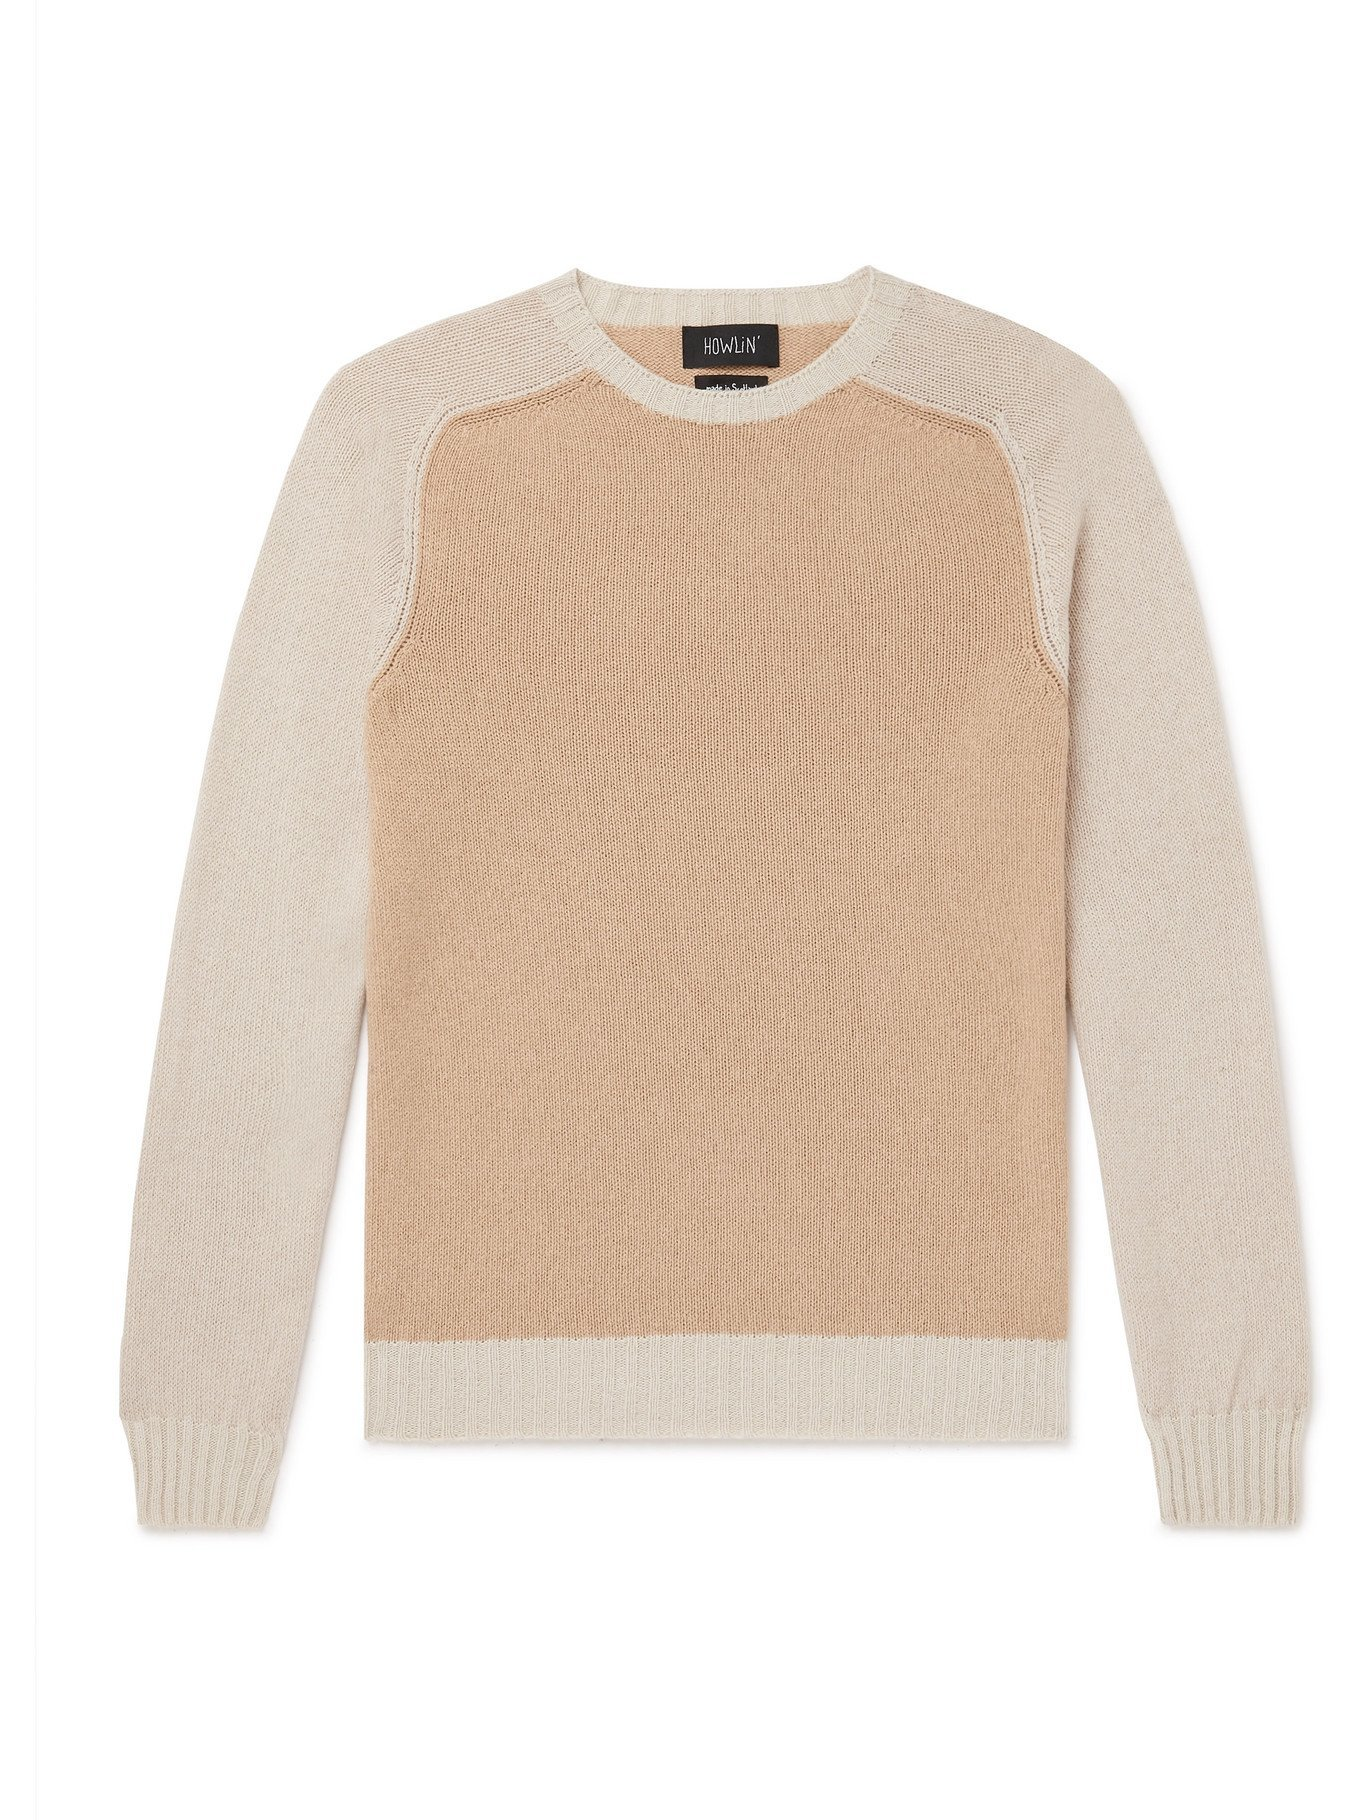 Photo: HOWLIN' - Colour-Block Wool and Cotton-Blend Sweater - Neutrals - S